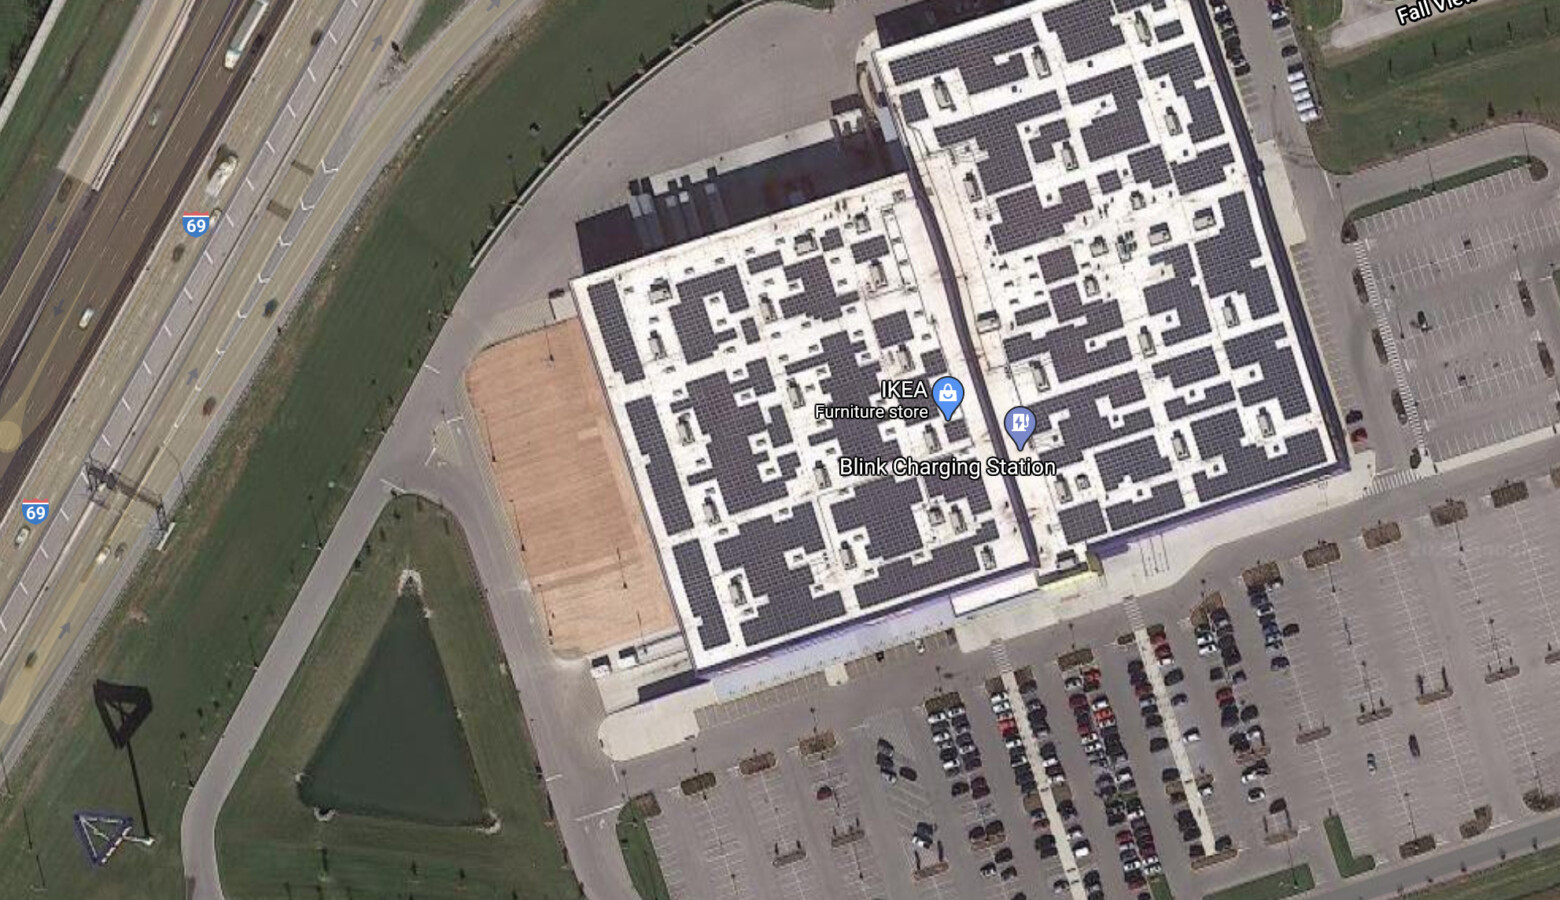 Solar panels on the roof of the IKEA furniture store in Fishers. Economic experts that spoke with the state's energy task force said more companies are looking to be located in states that can help them meet their sustainability goals. (Google Maps)